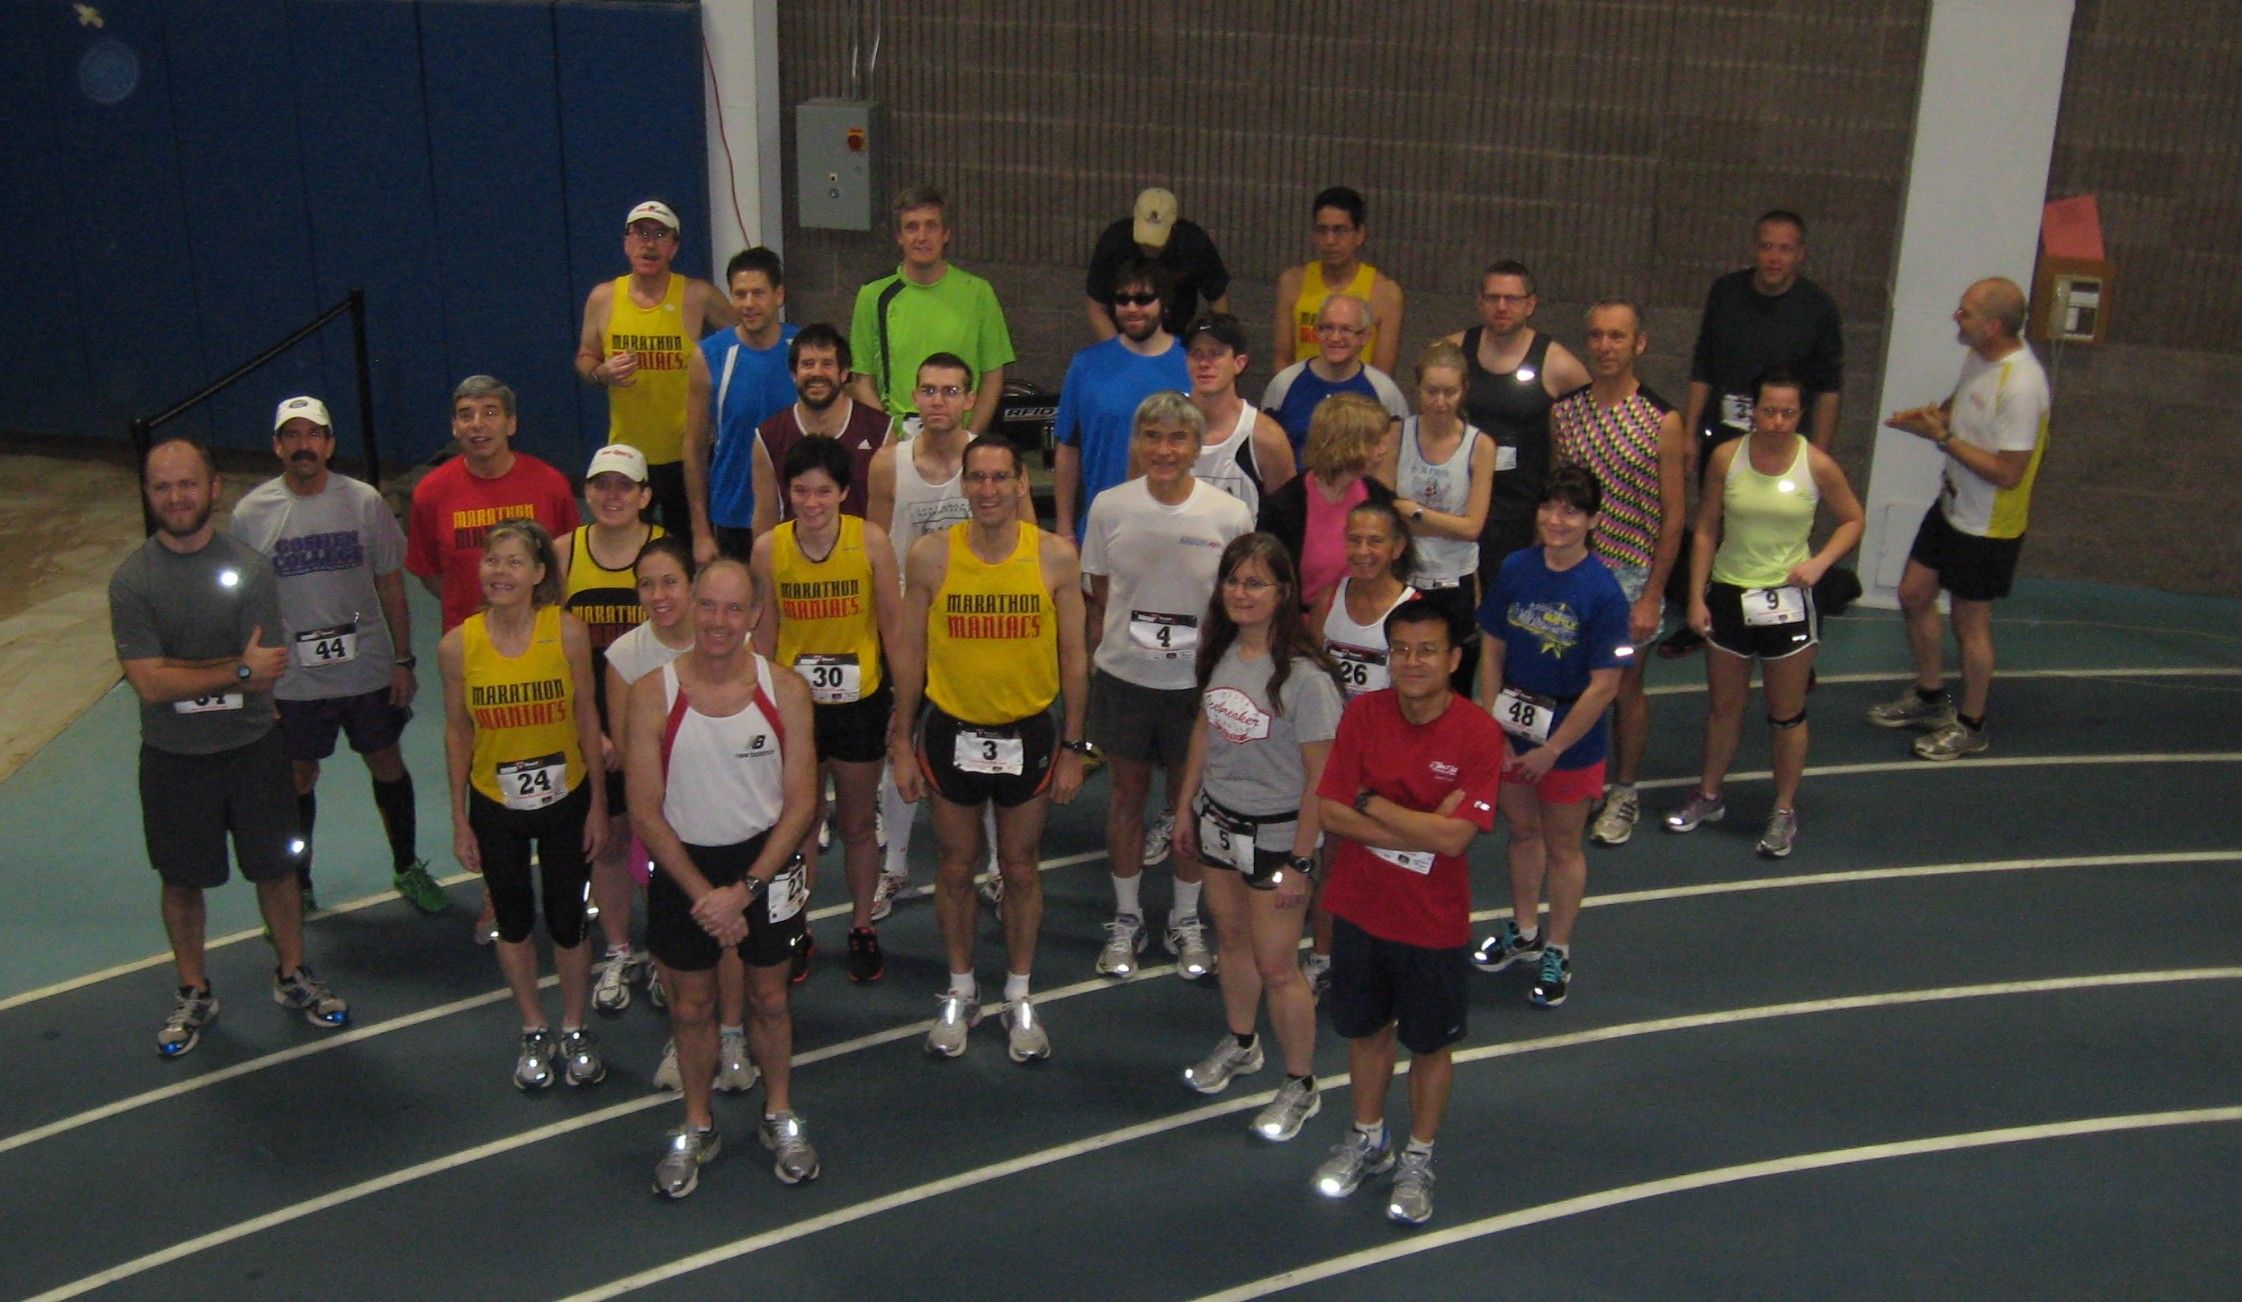 Runners in the Maple Leaf Indoor Marathon group together for a picture